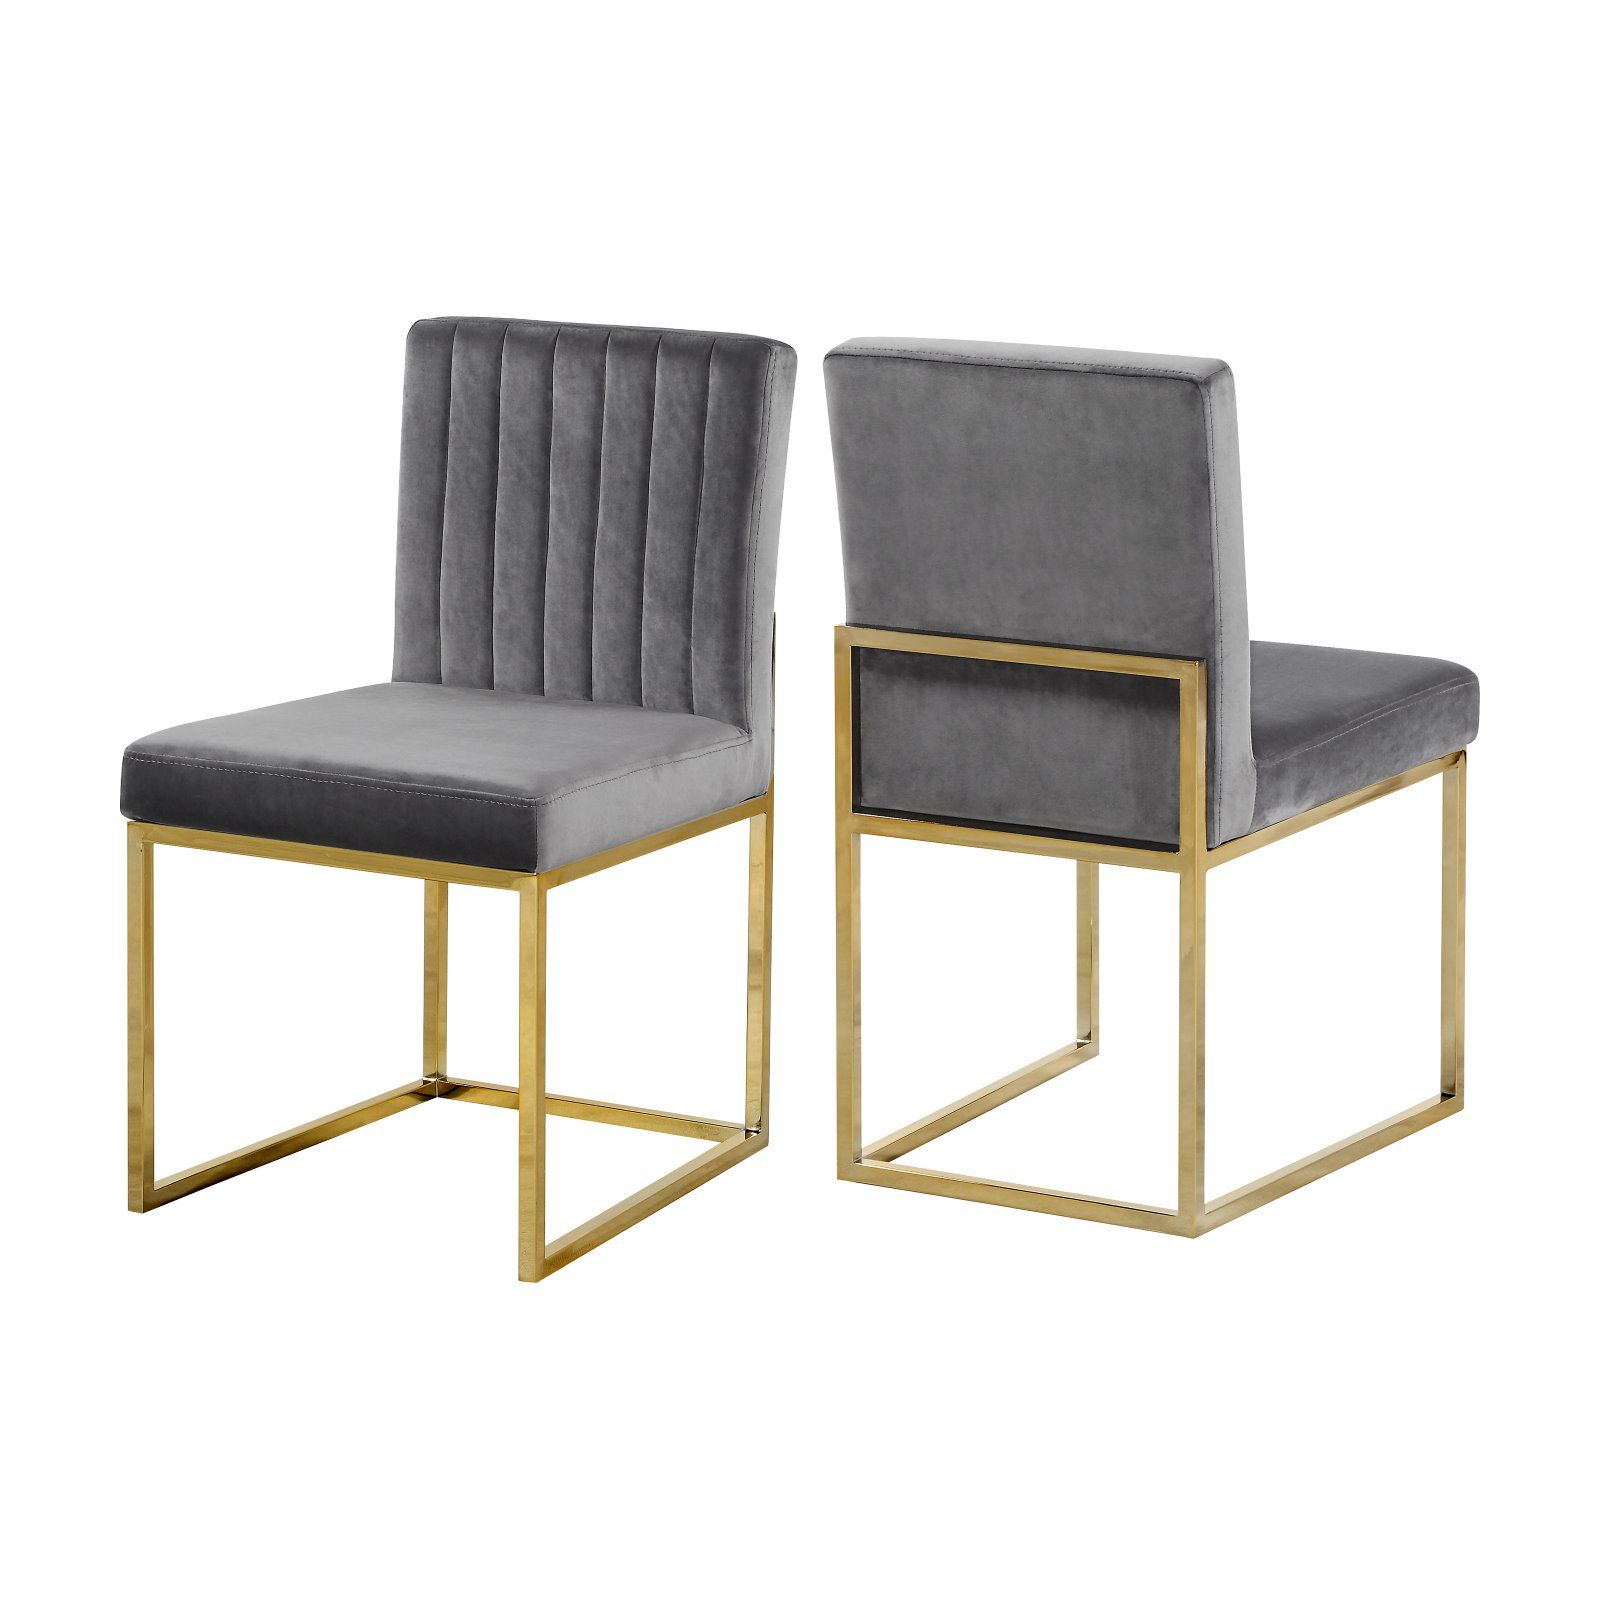 Meridian Furniture Inc Giselle Upholstered Dining Side Chair Set